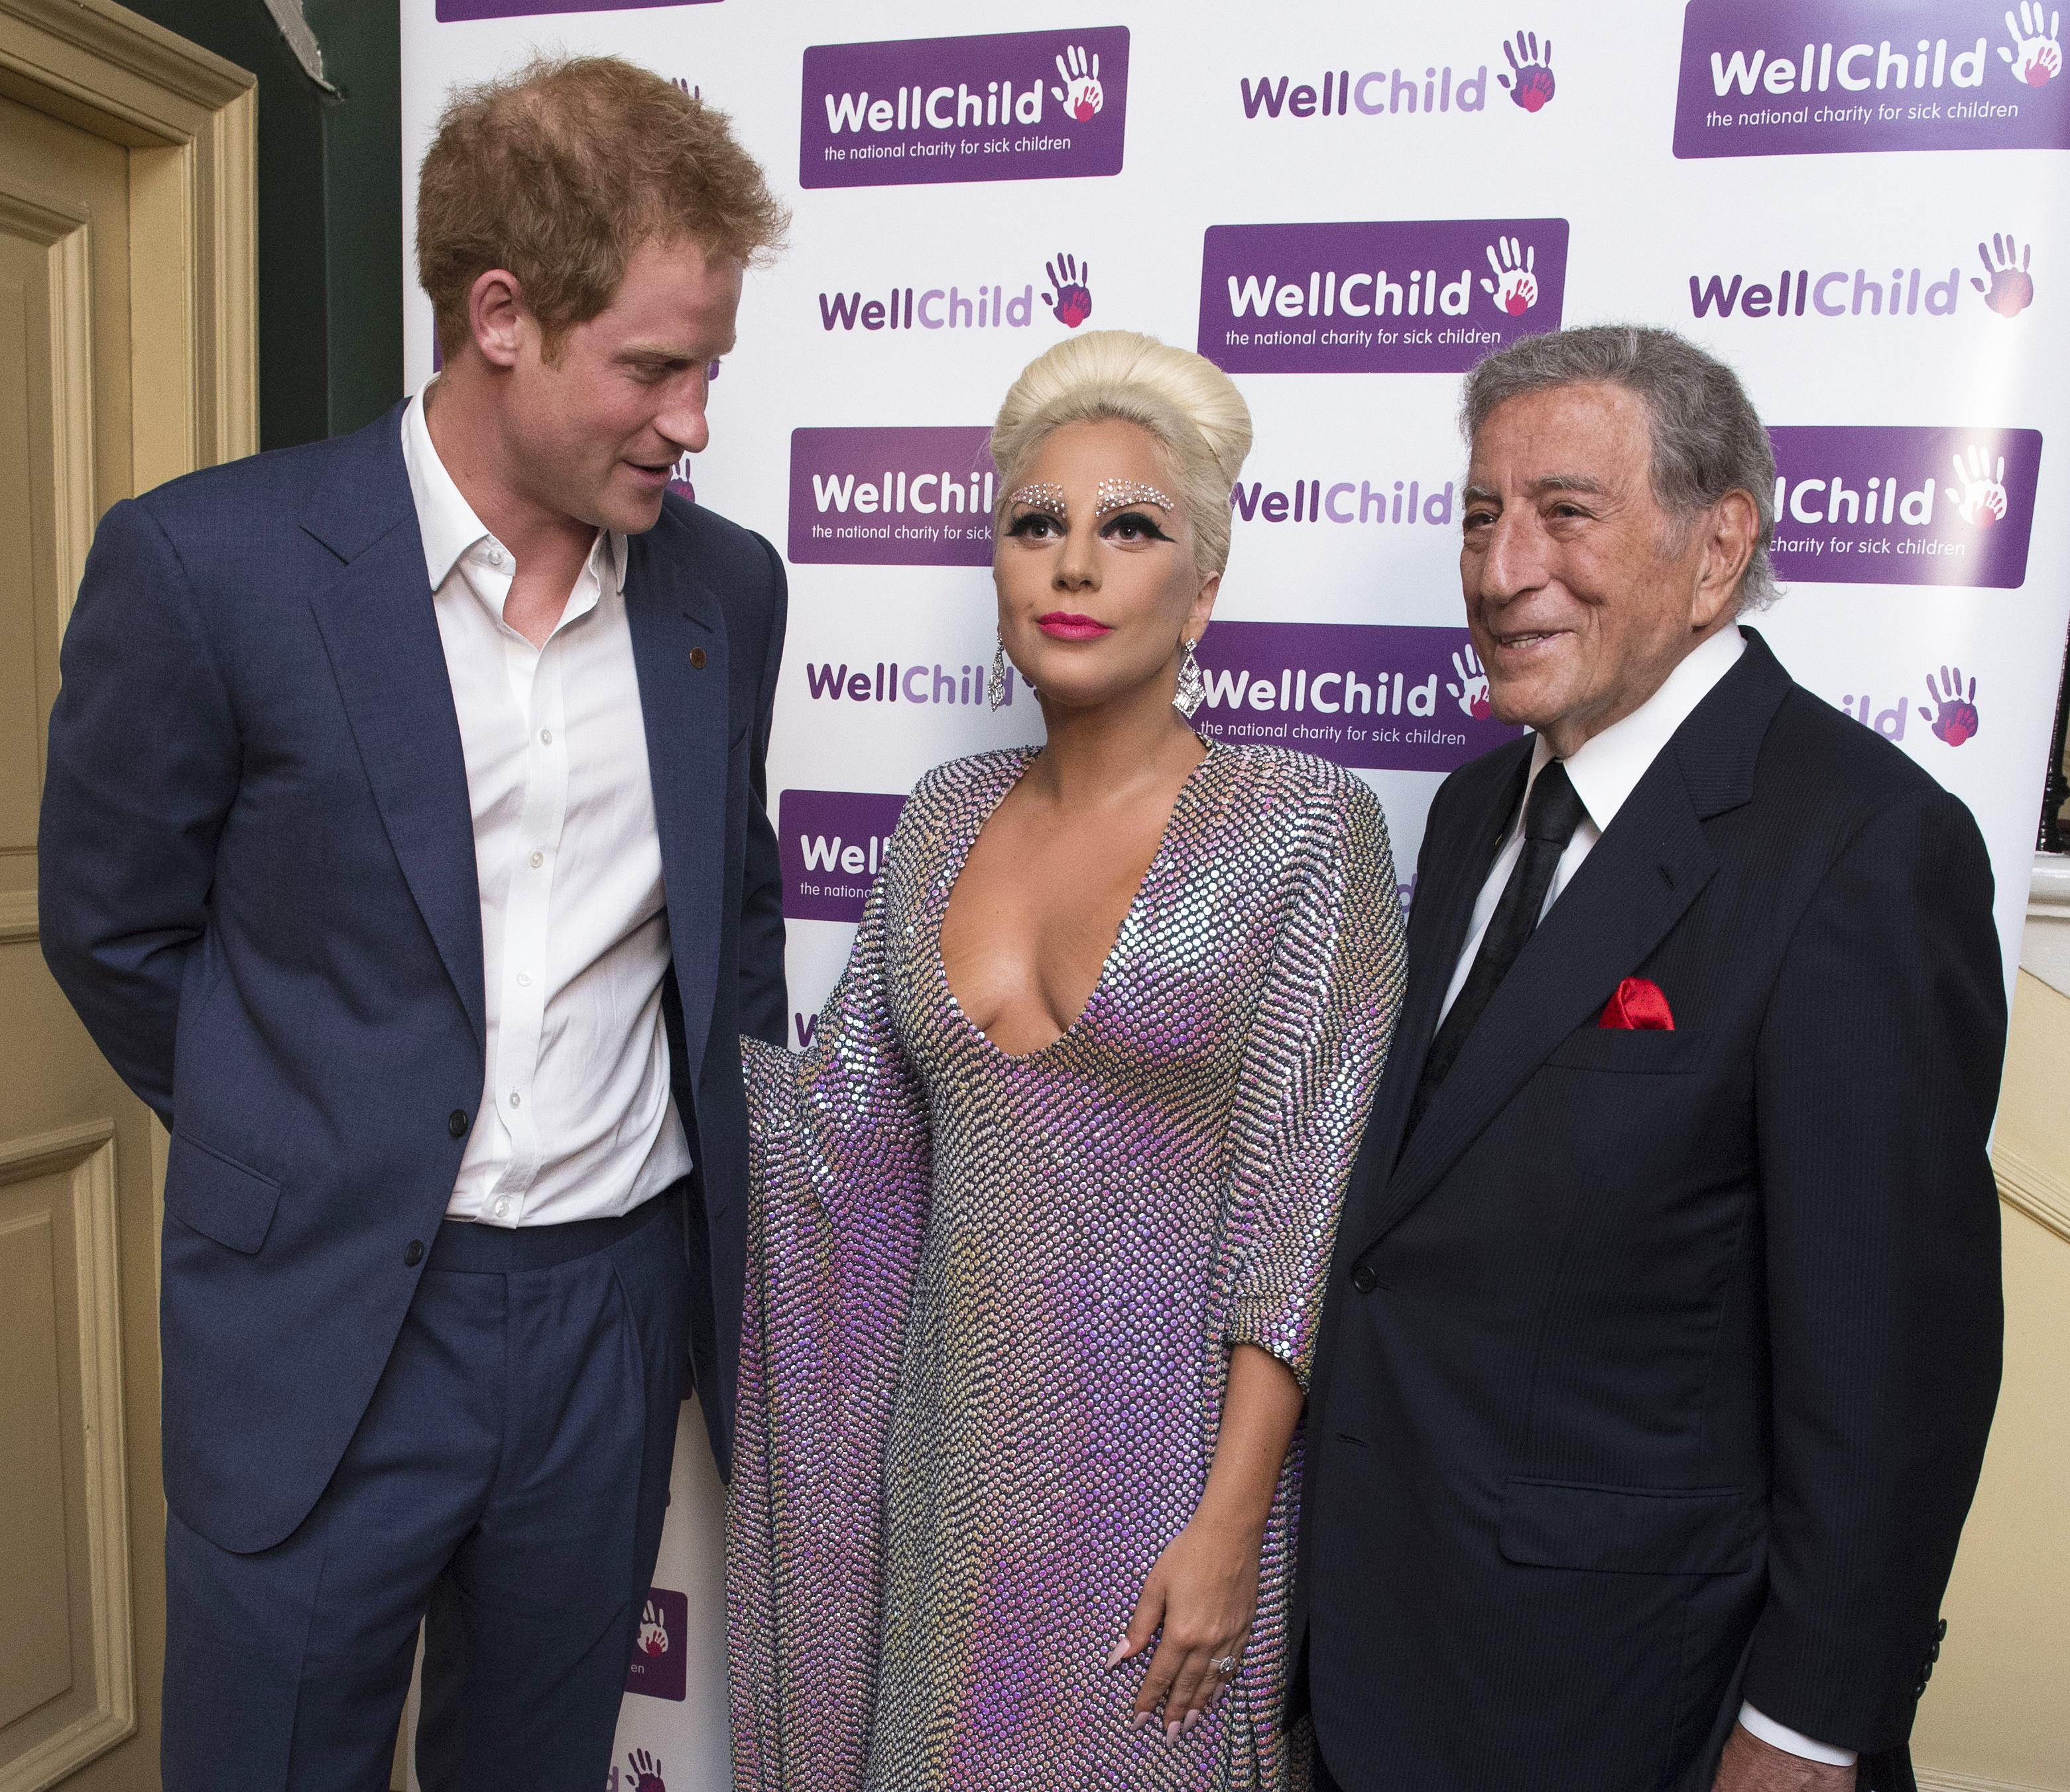 [9:16] Britain's Prince Harry (L) stands with performers Lady Gaga and Tony Bennett before a Well Child charity concert at the Royal Albert Hall